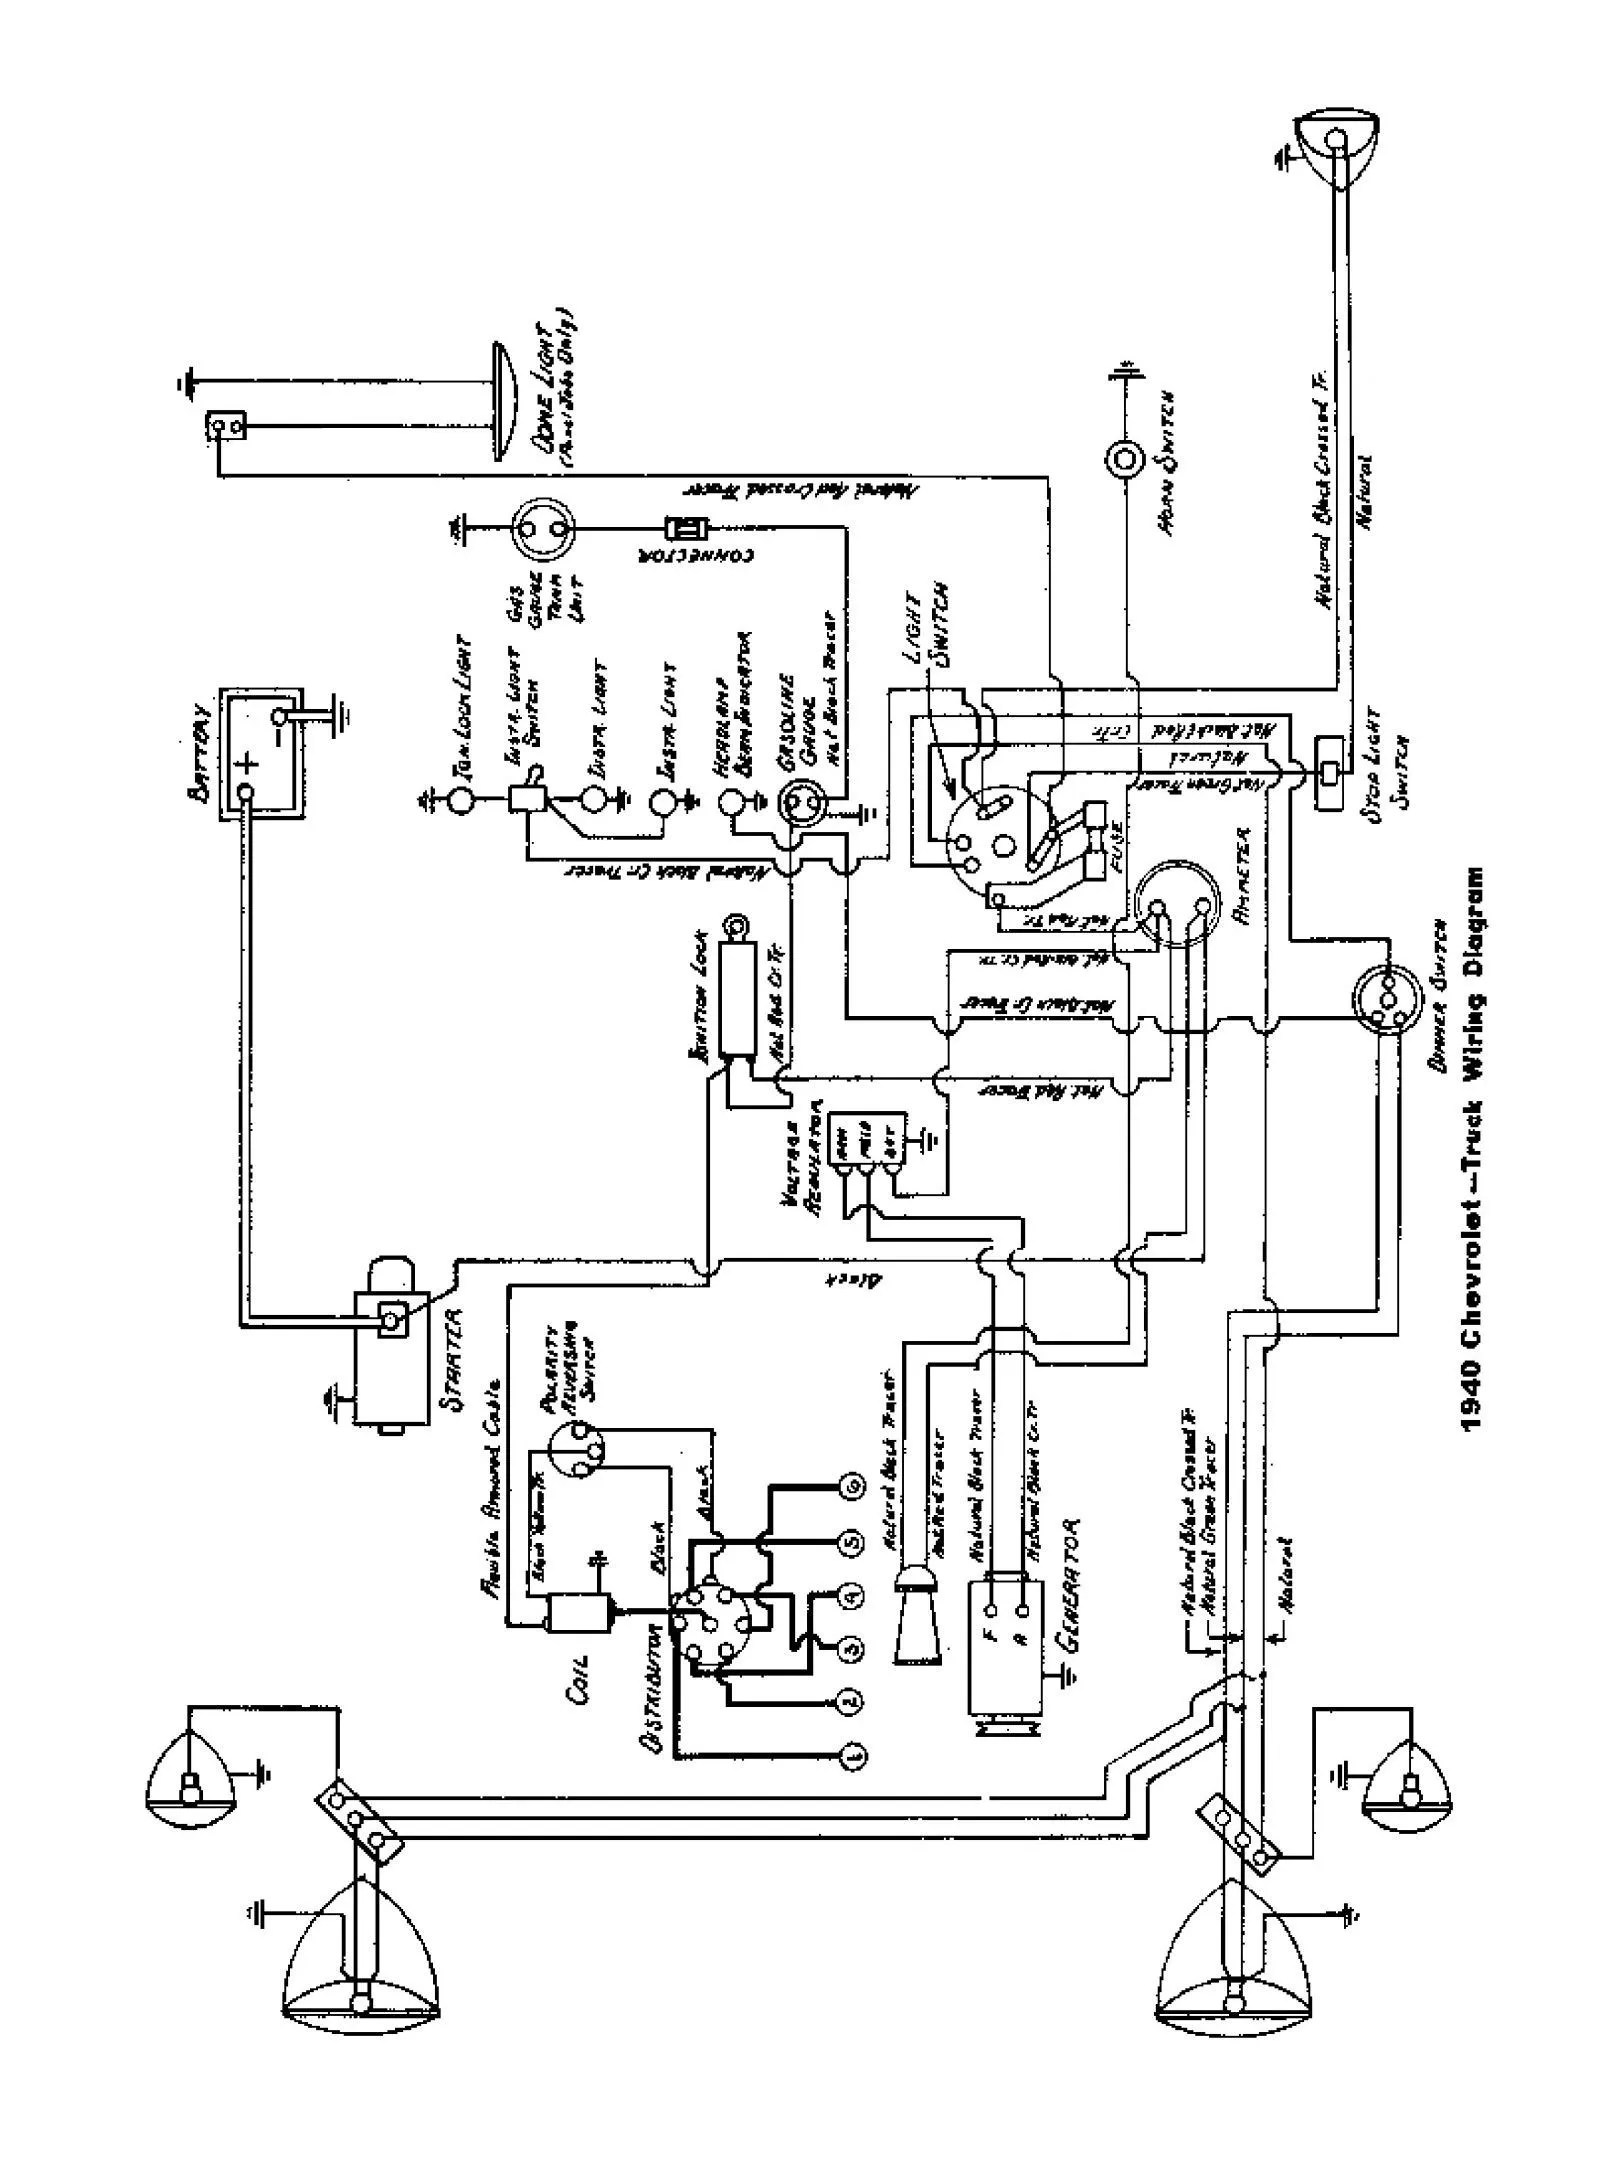 hight resolution of 1955 plymouth wiring diagram wiring diagram post 1956 chrysler wiring diagram wiring diagram schema 1955 chrysler